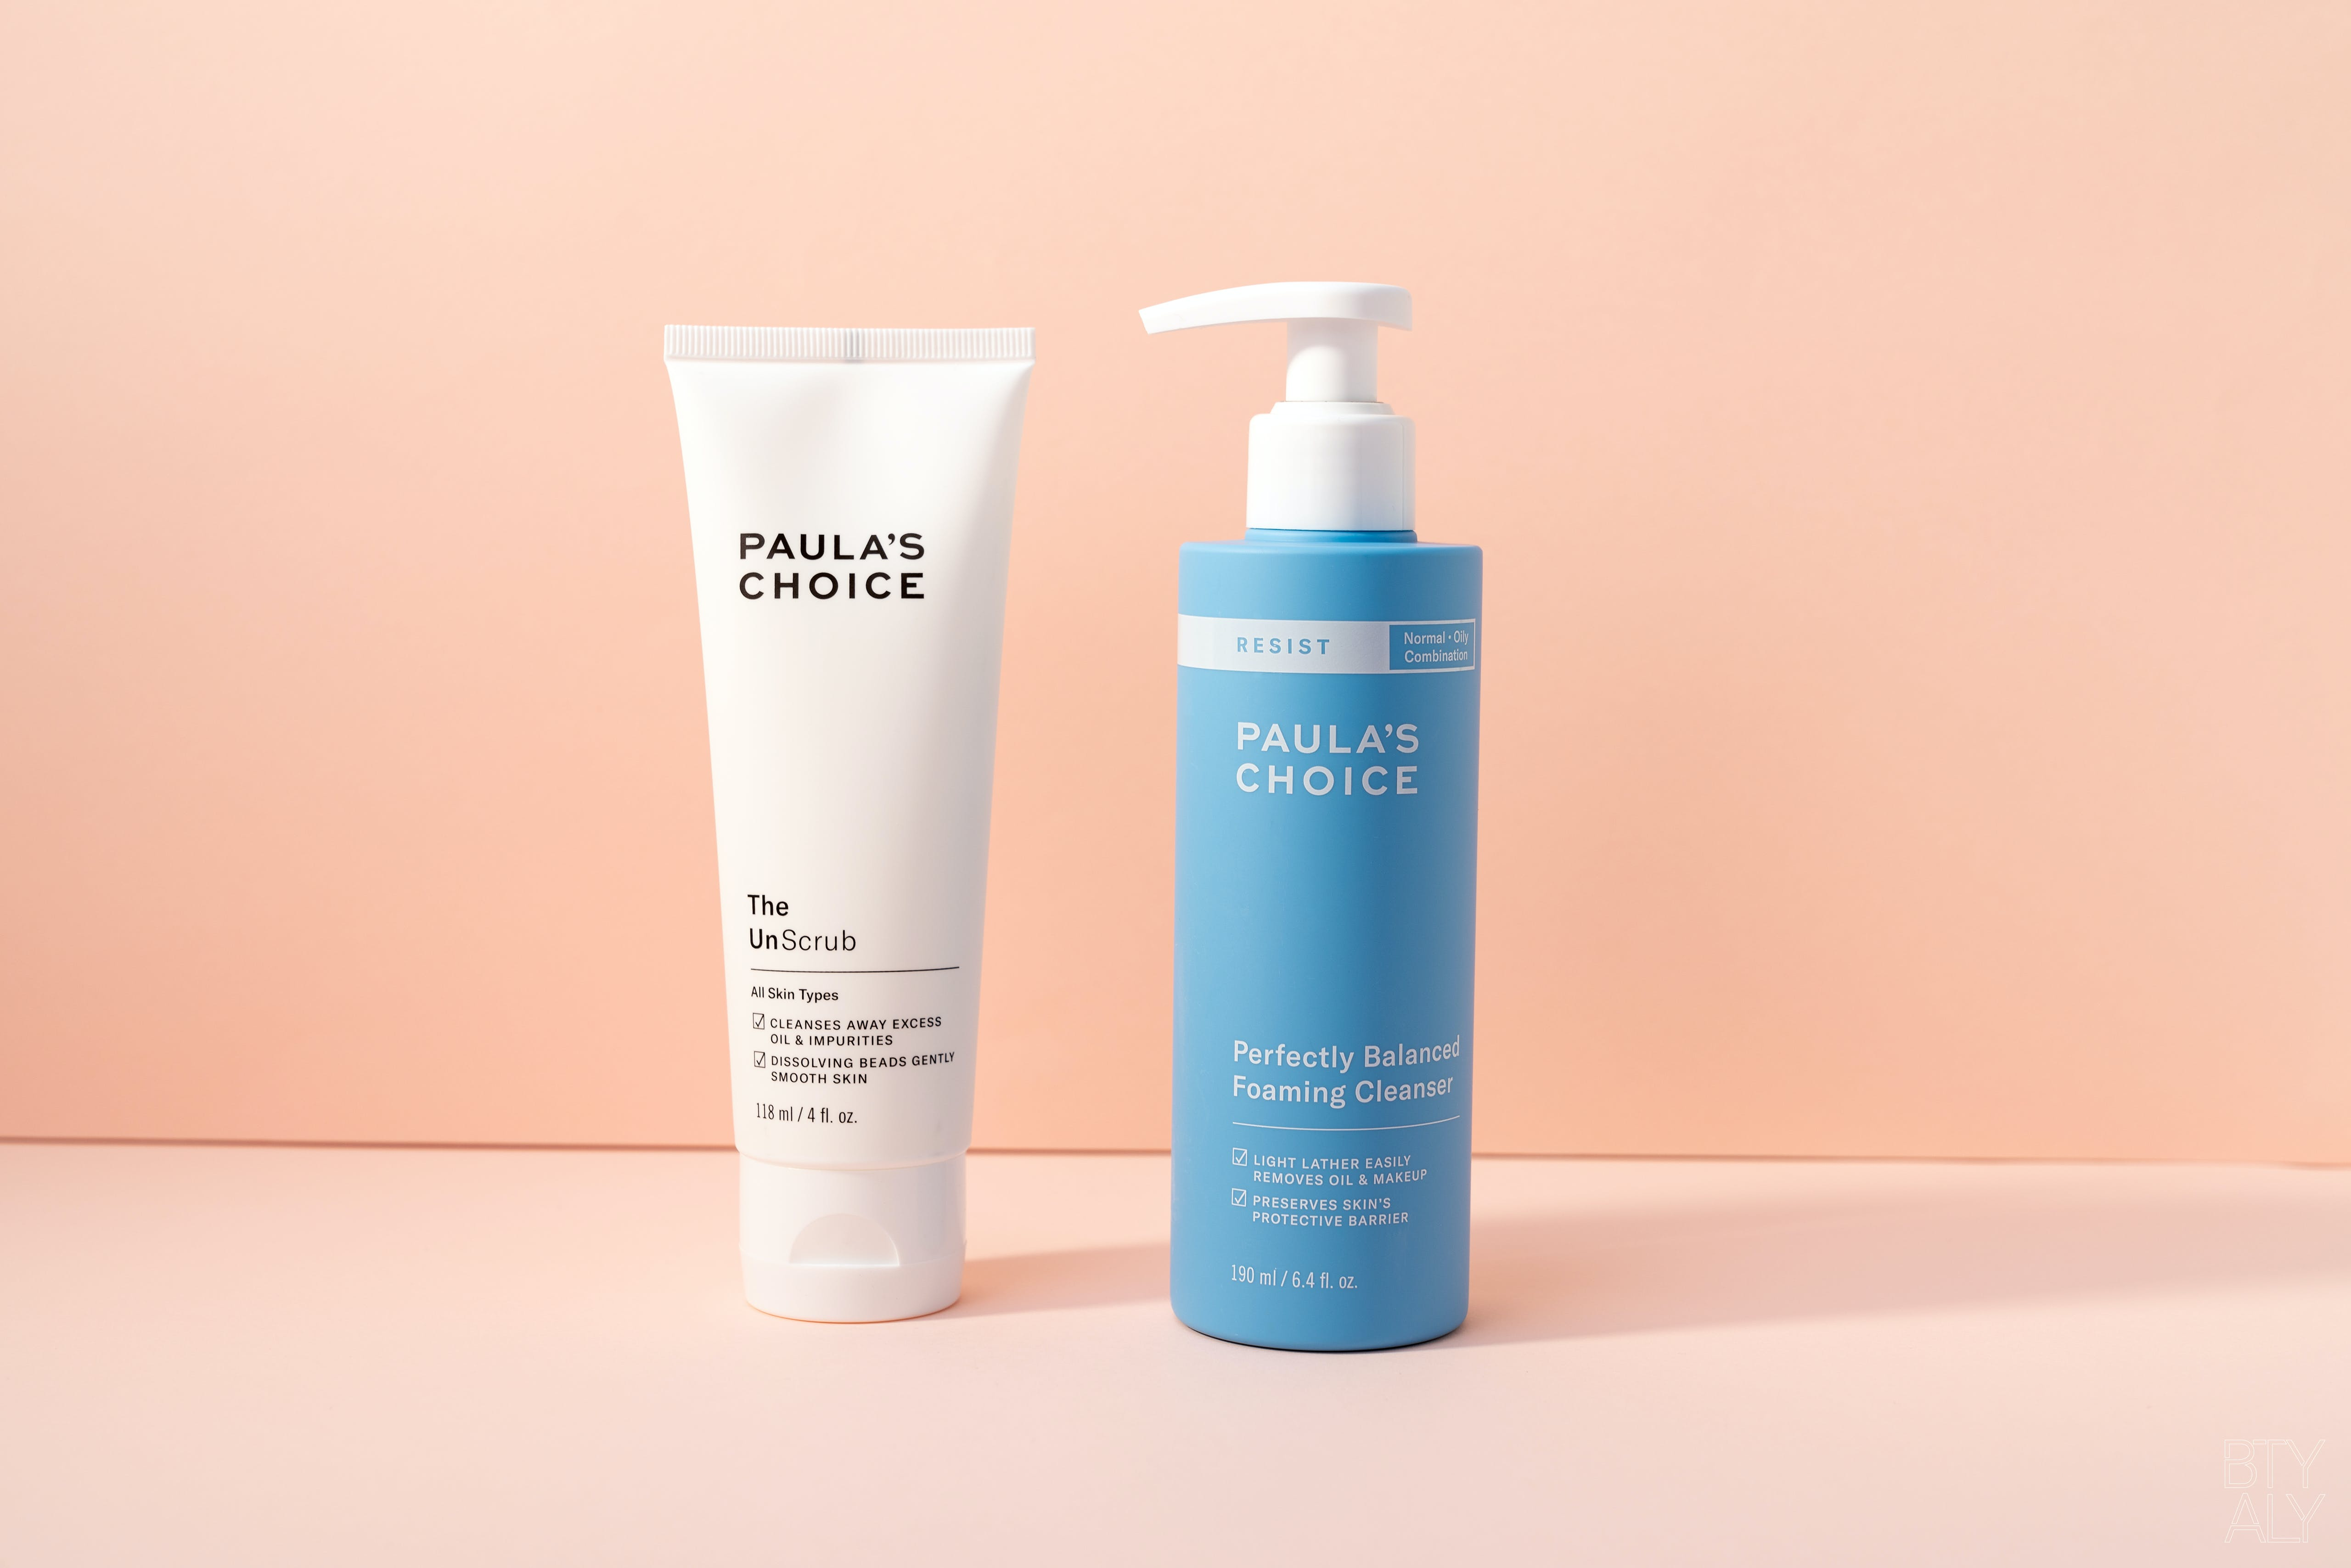 Paula's Choice The UnScrub, Perfectly Balanced Foaming Cleanser